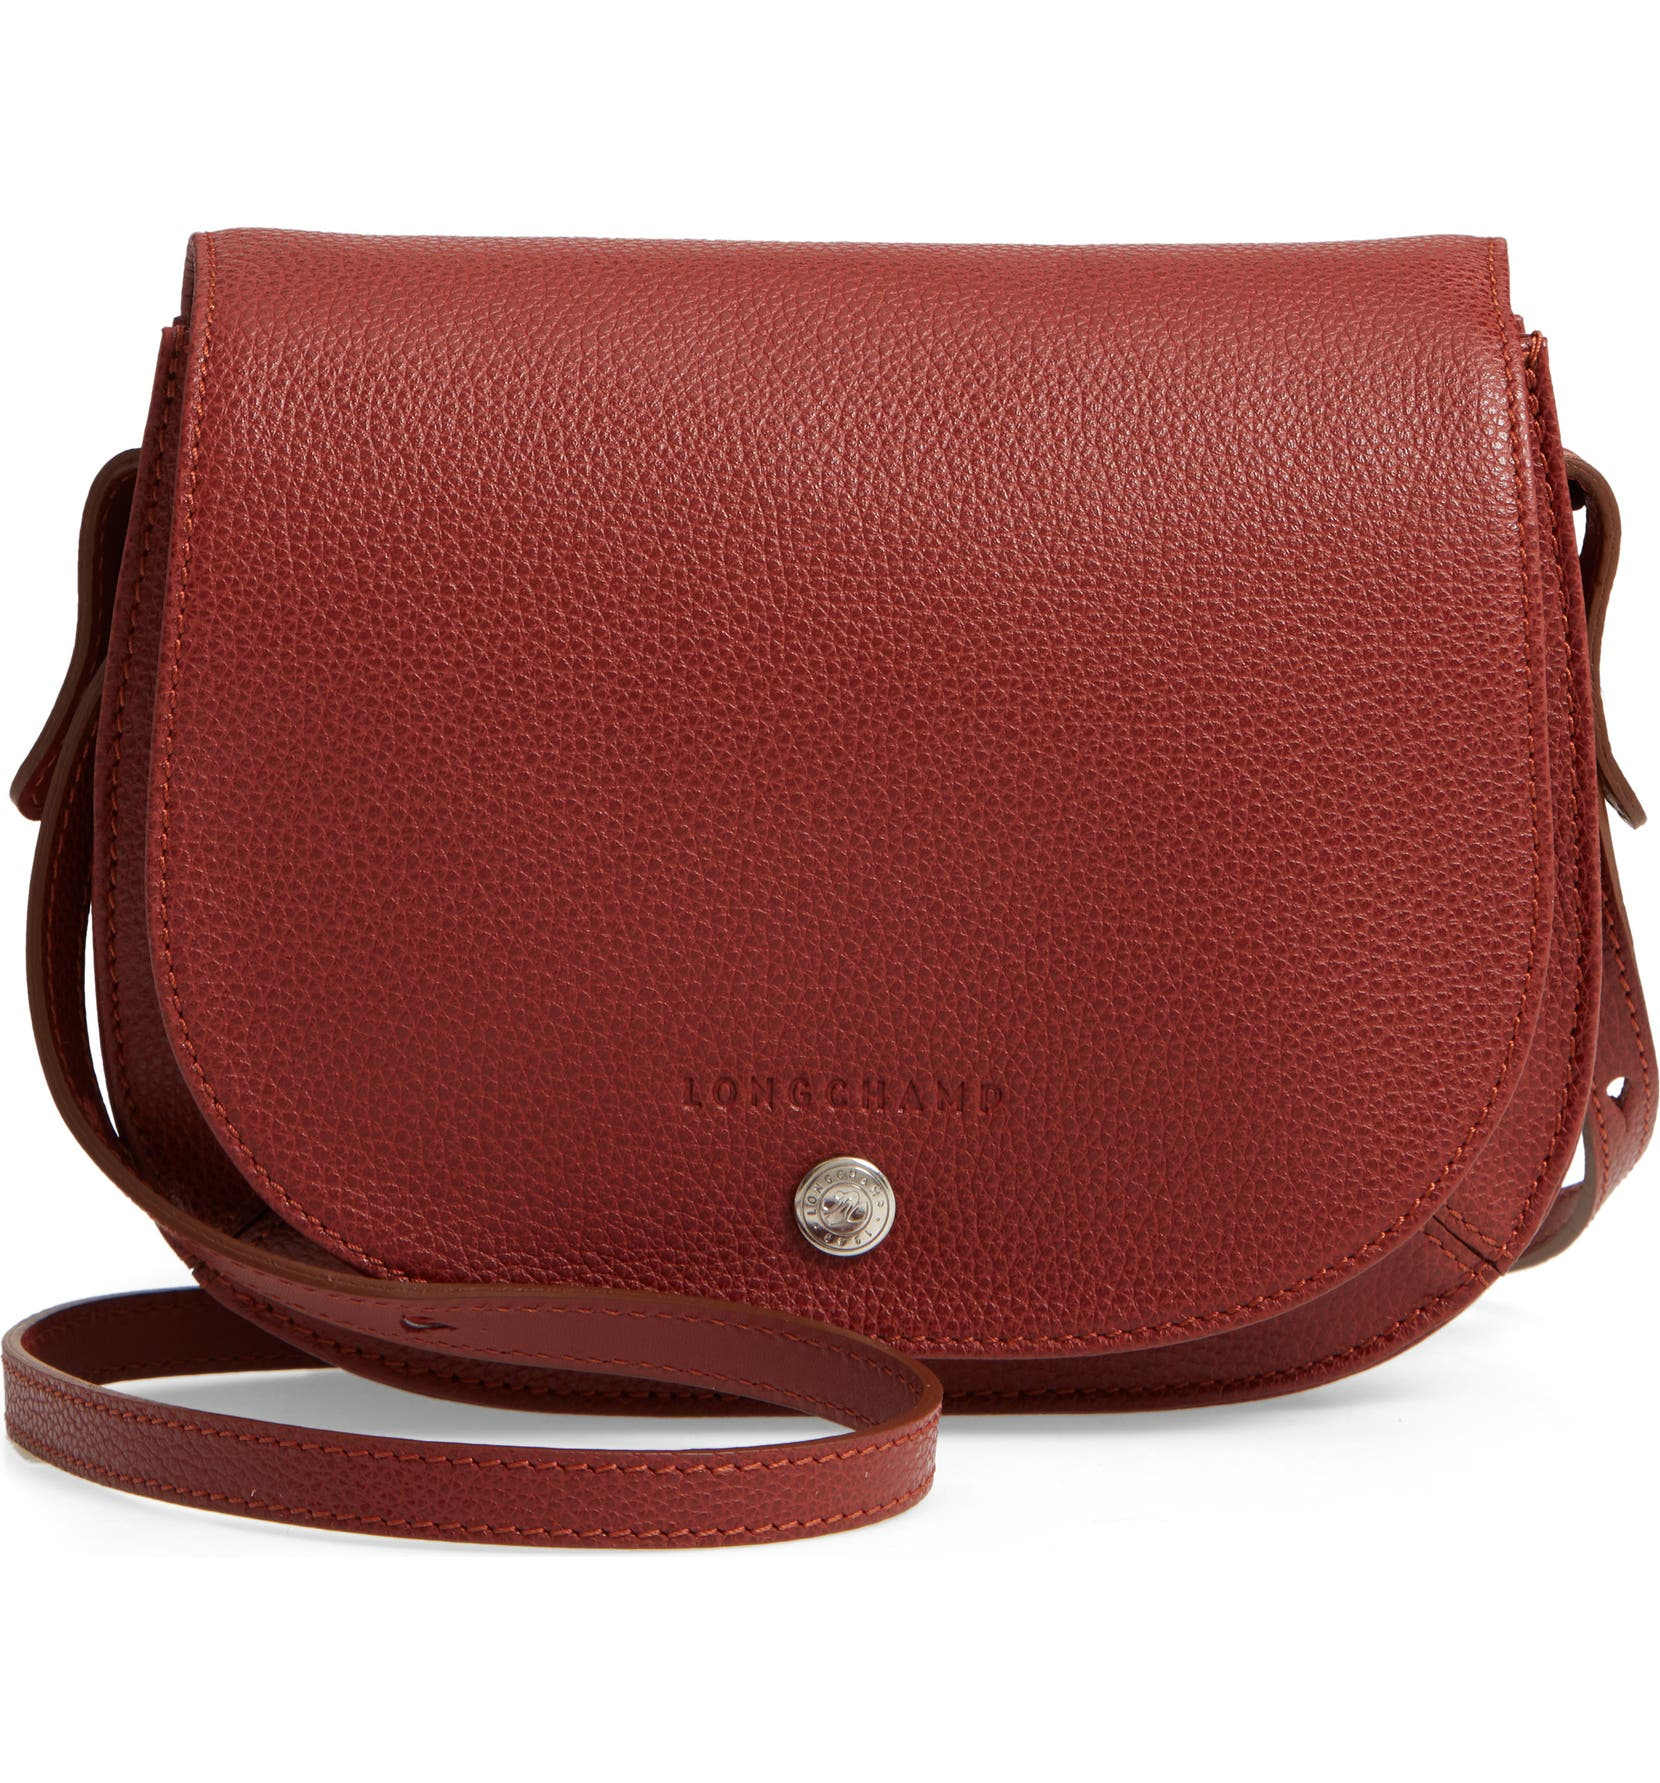 Longchamp Small Le Foulonne Leather Crossbody Bag  ffe7a72e5bfca